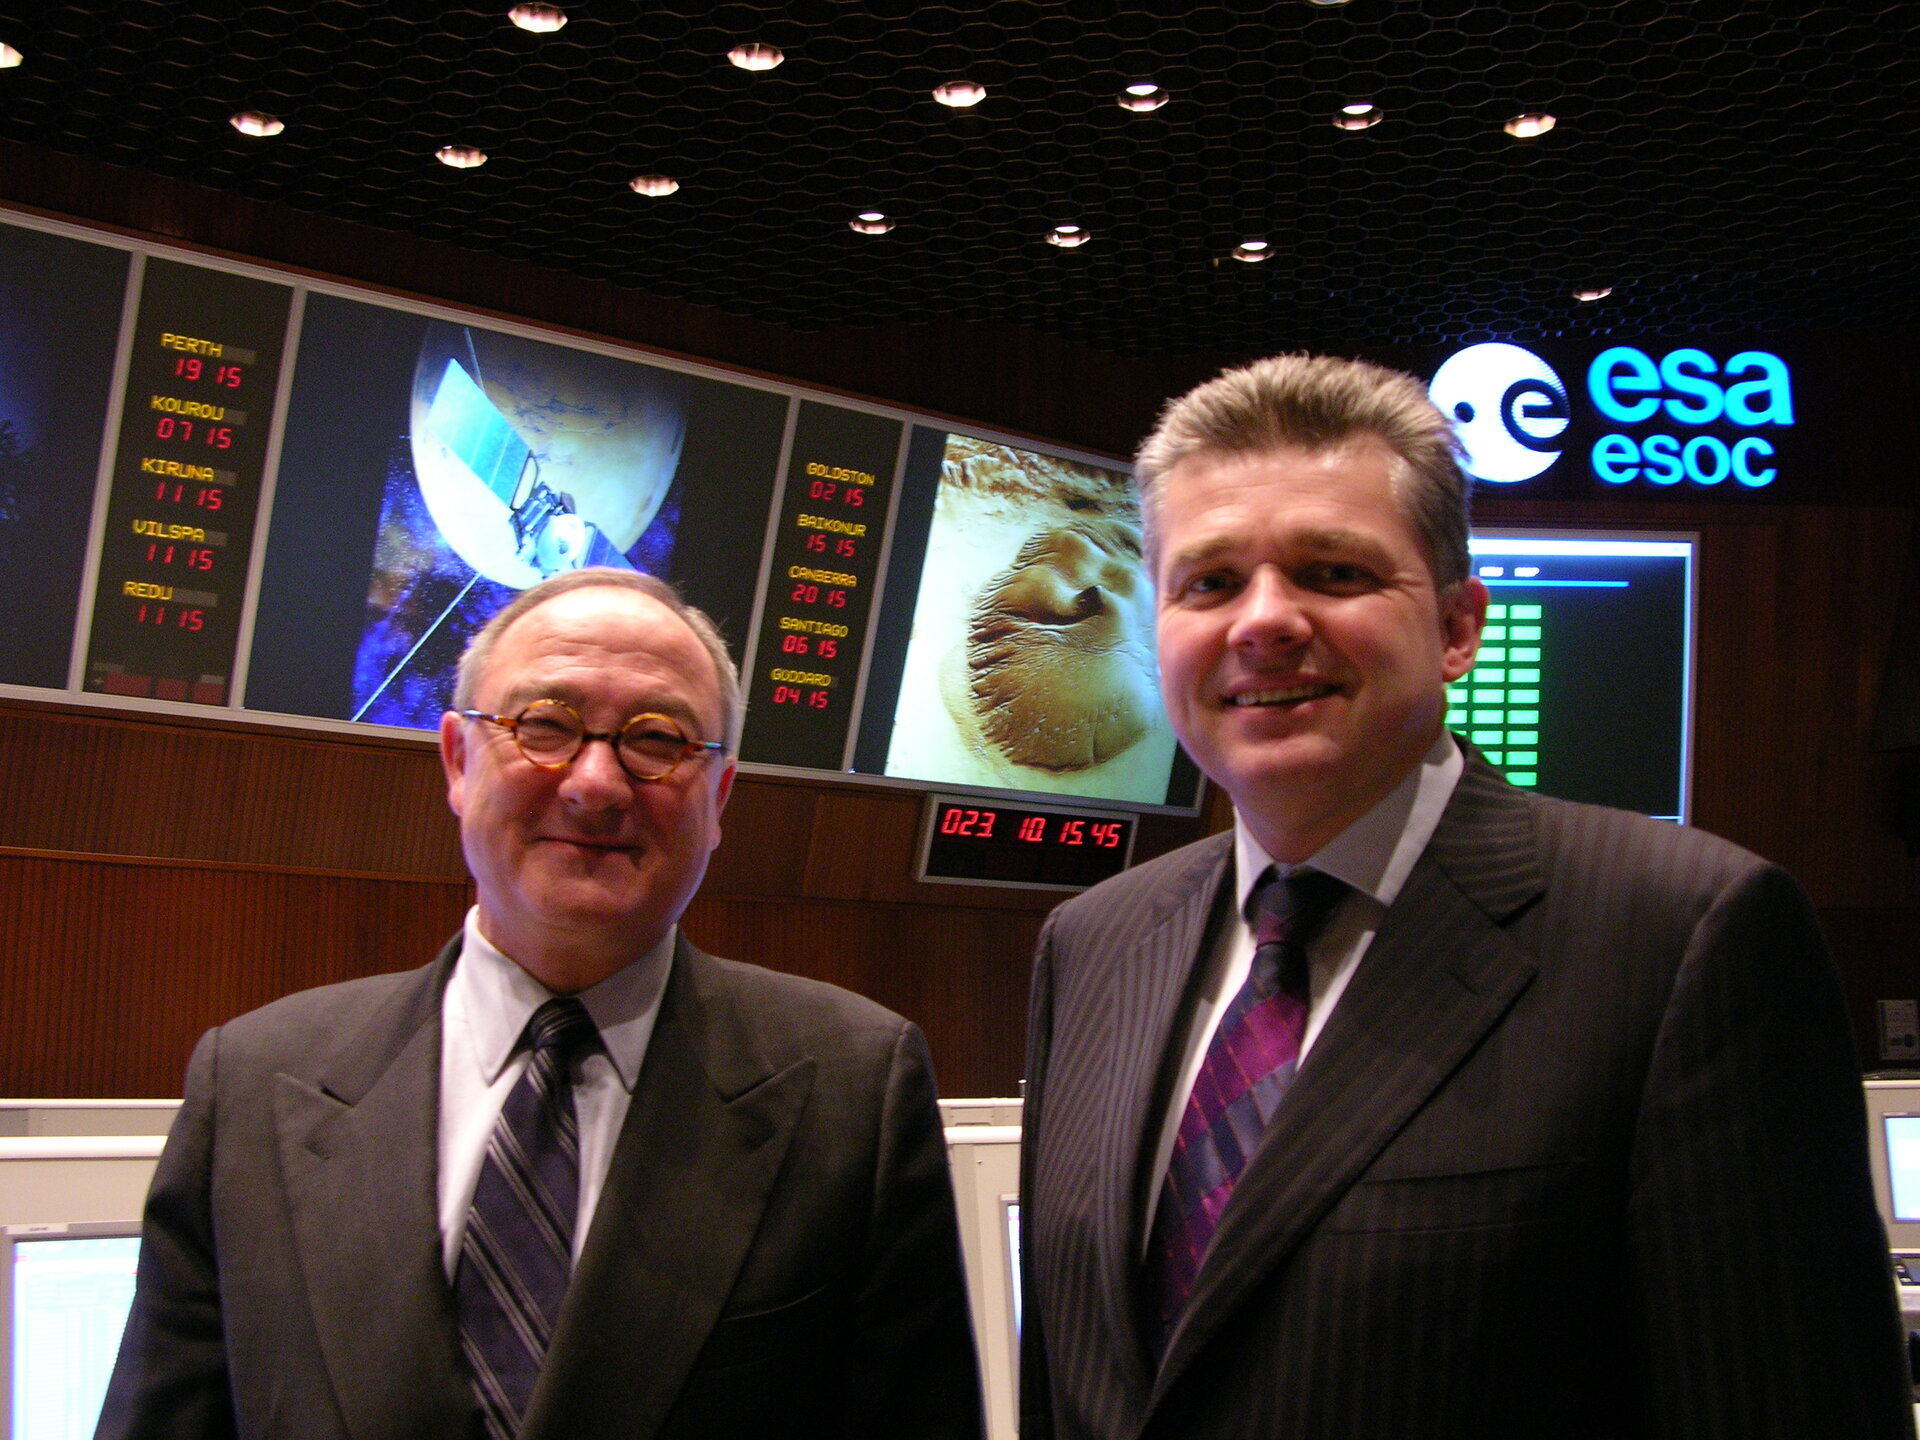 UK science minister Ian Pearson (R) with J-J. Dordain in ESOC Main Control Room